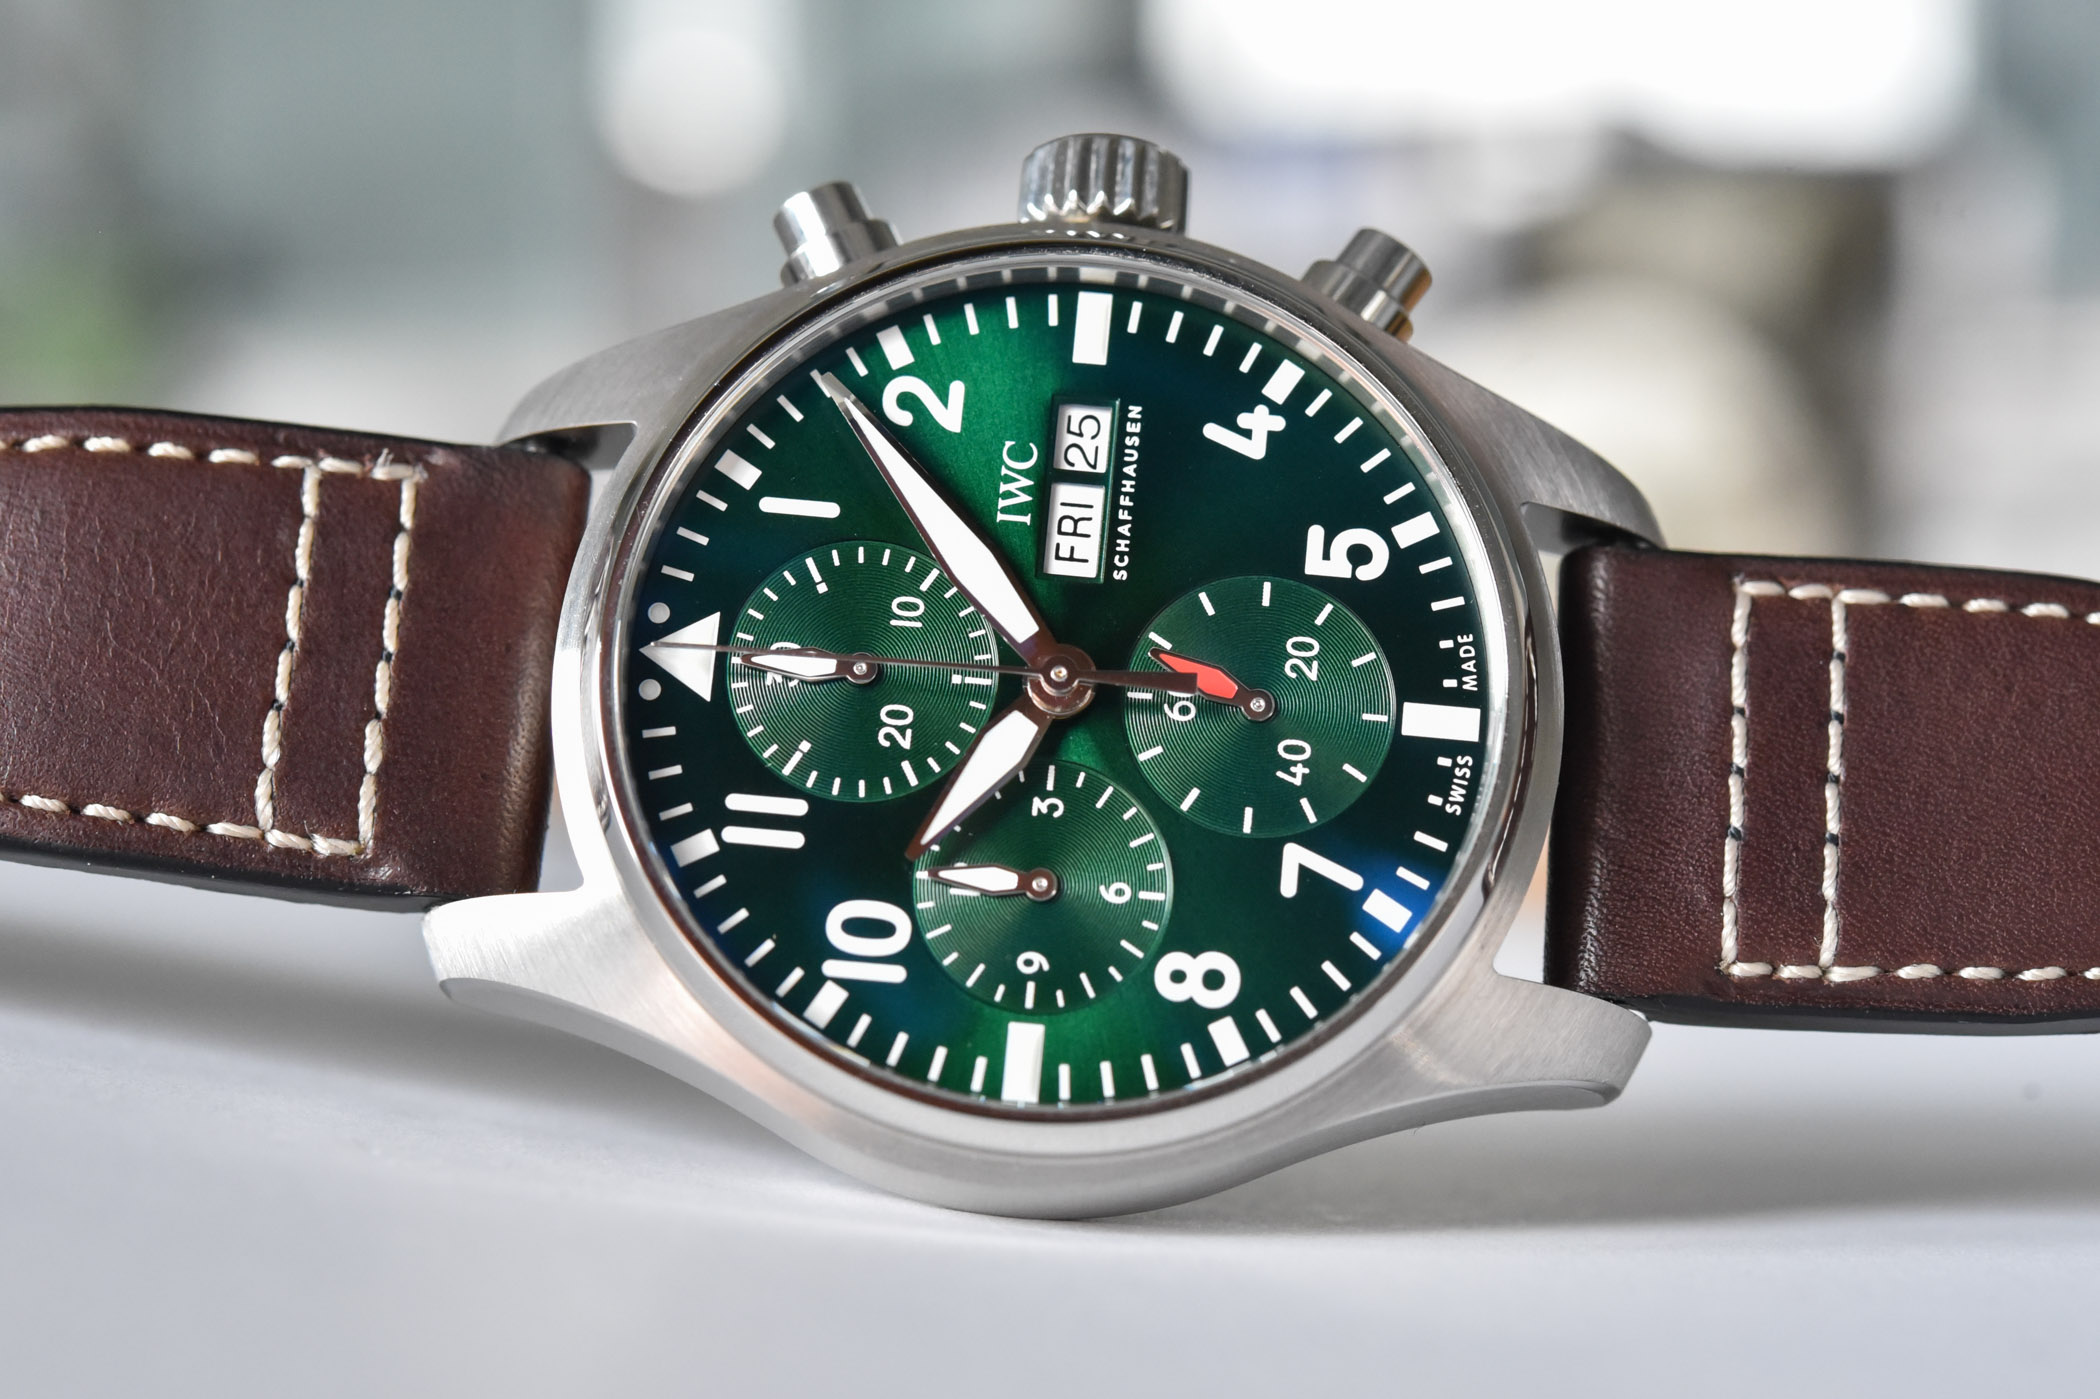 IWC Pilot's Watch Chronograph 41 - IW3881 - review video - 11